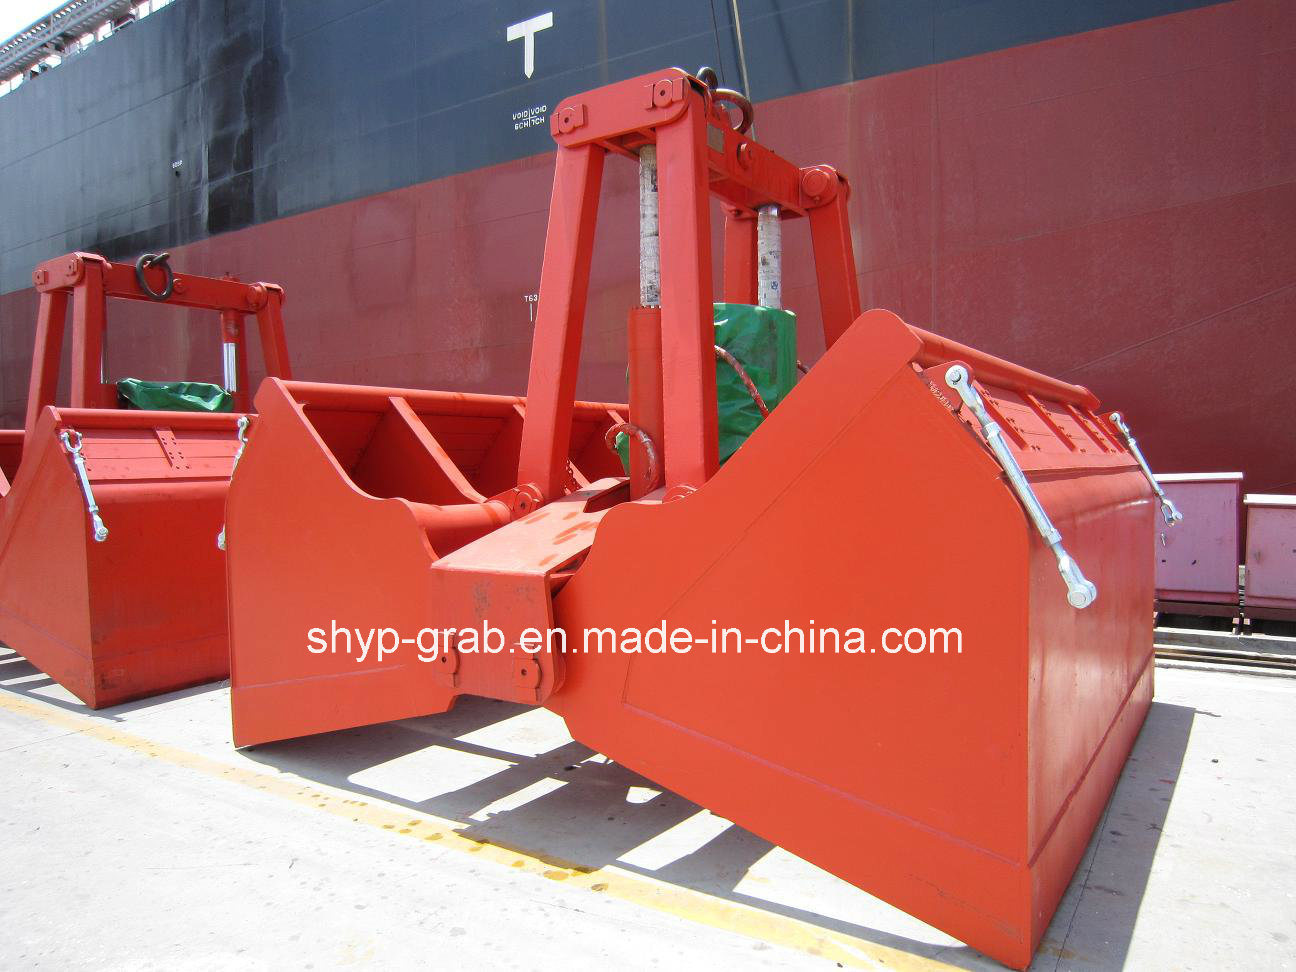 Motor Hydraulic Clamshell Grab with Ce Certificate